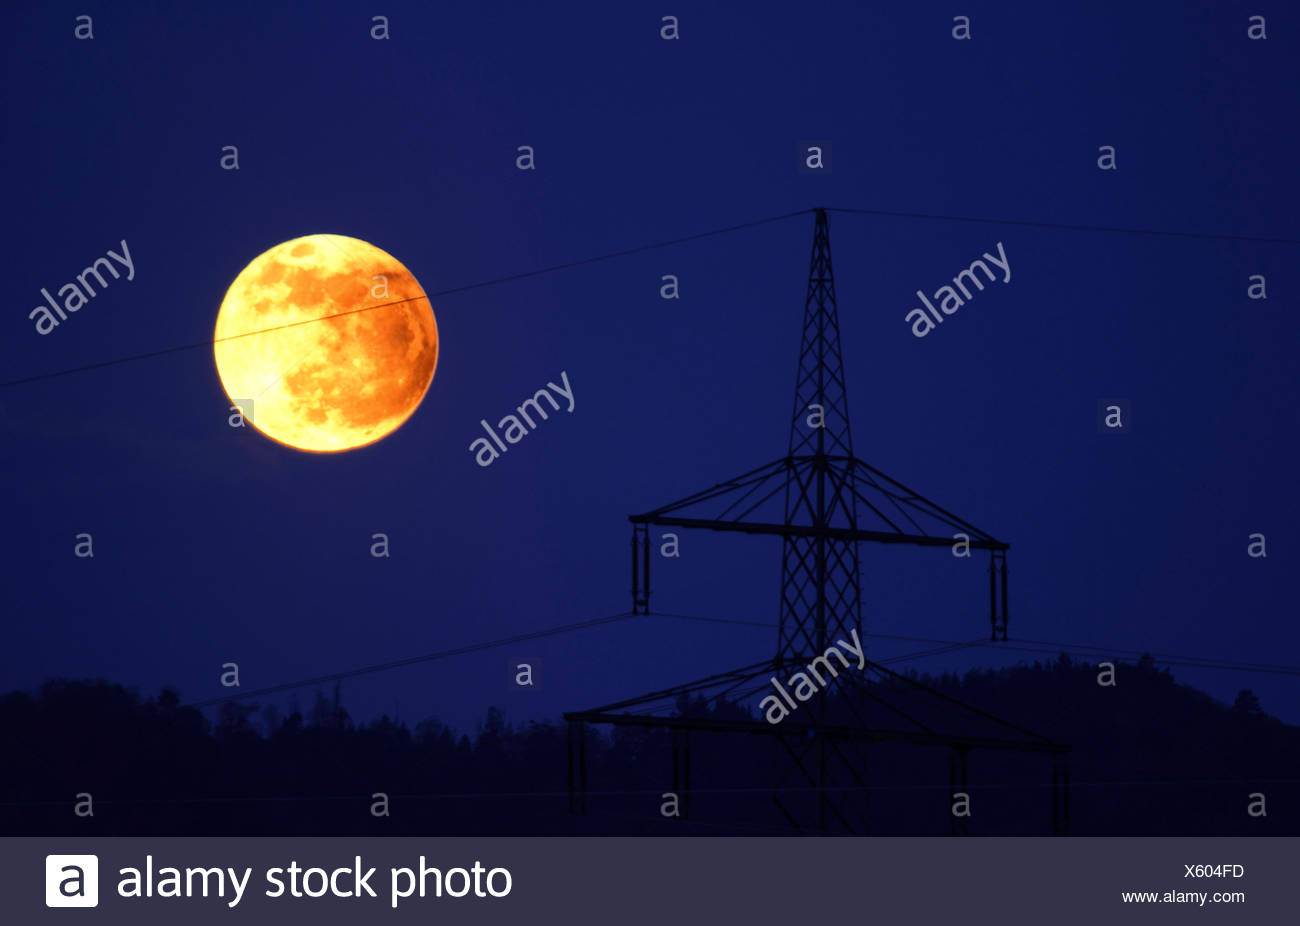 night shot with full moon and electricity pylon, Germany - Stock Image